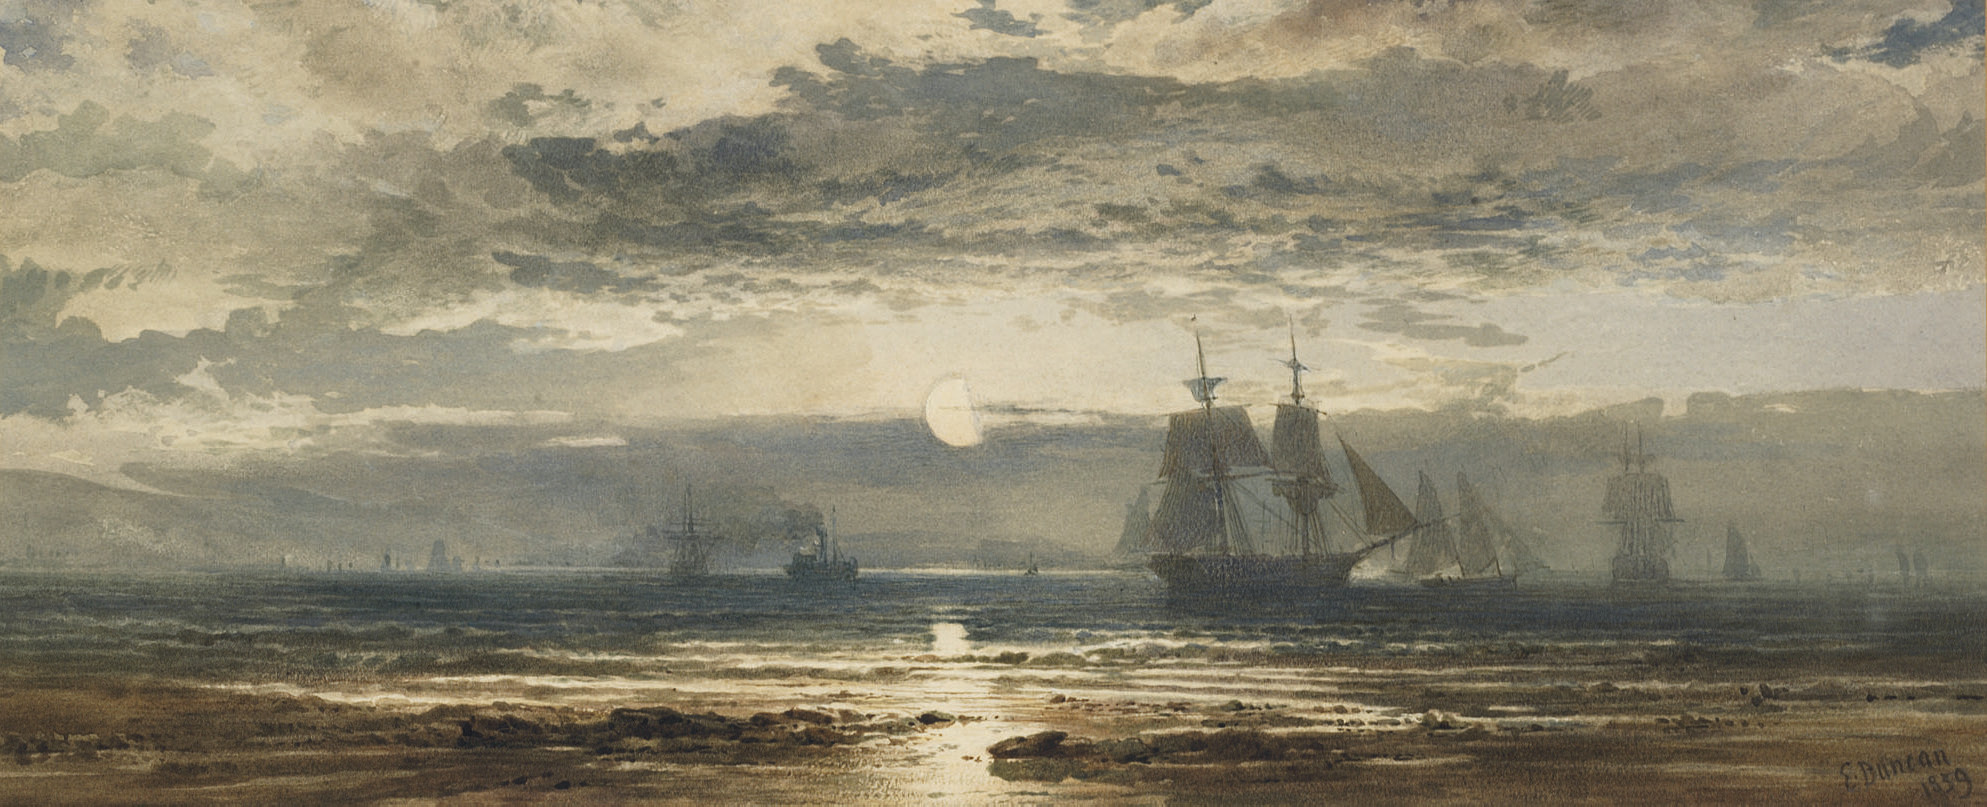 Moonlight: ships that pass in the night